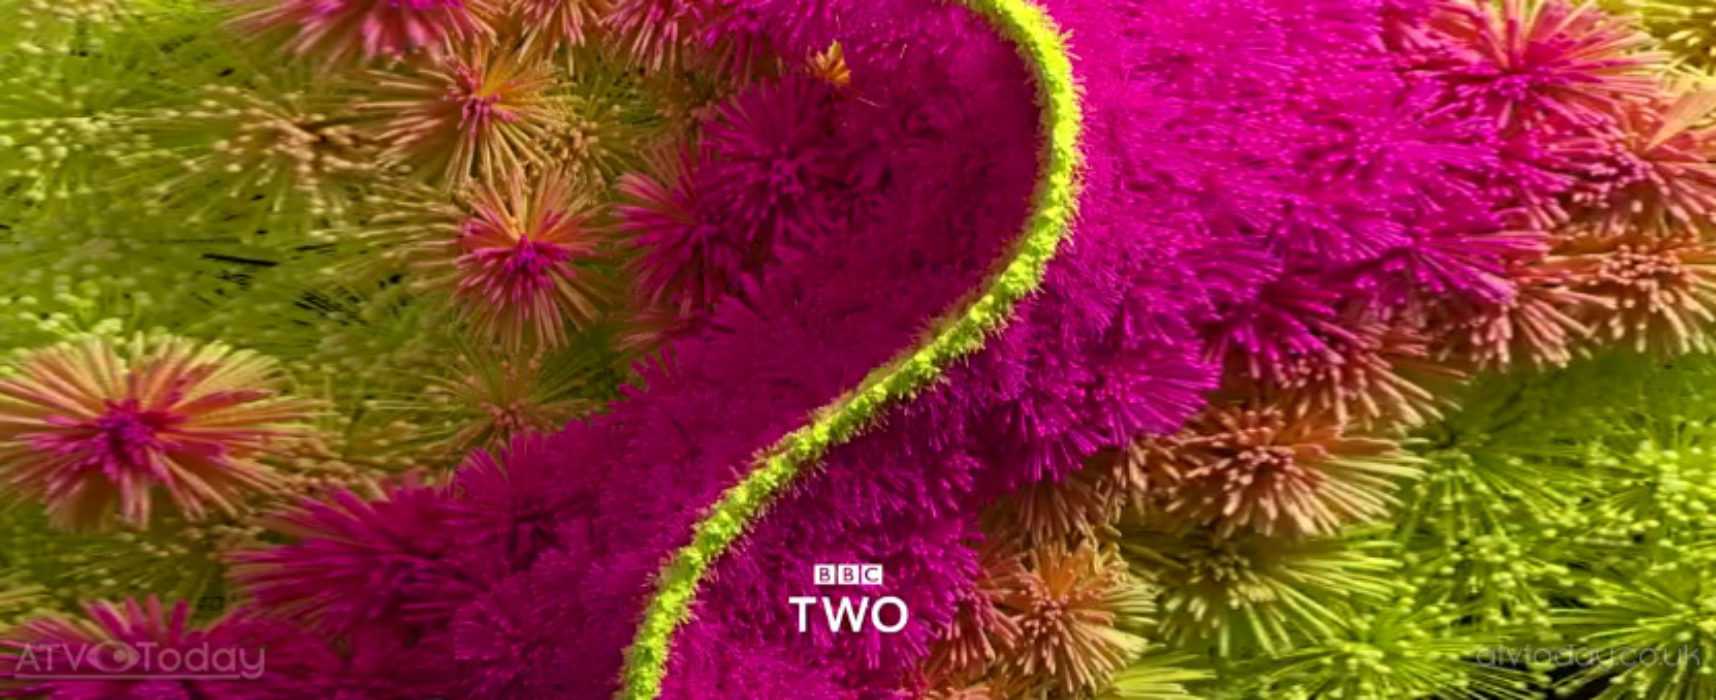 Cast announced for BBC Two factual drama Responsible Child